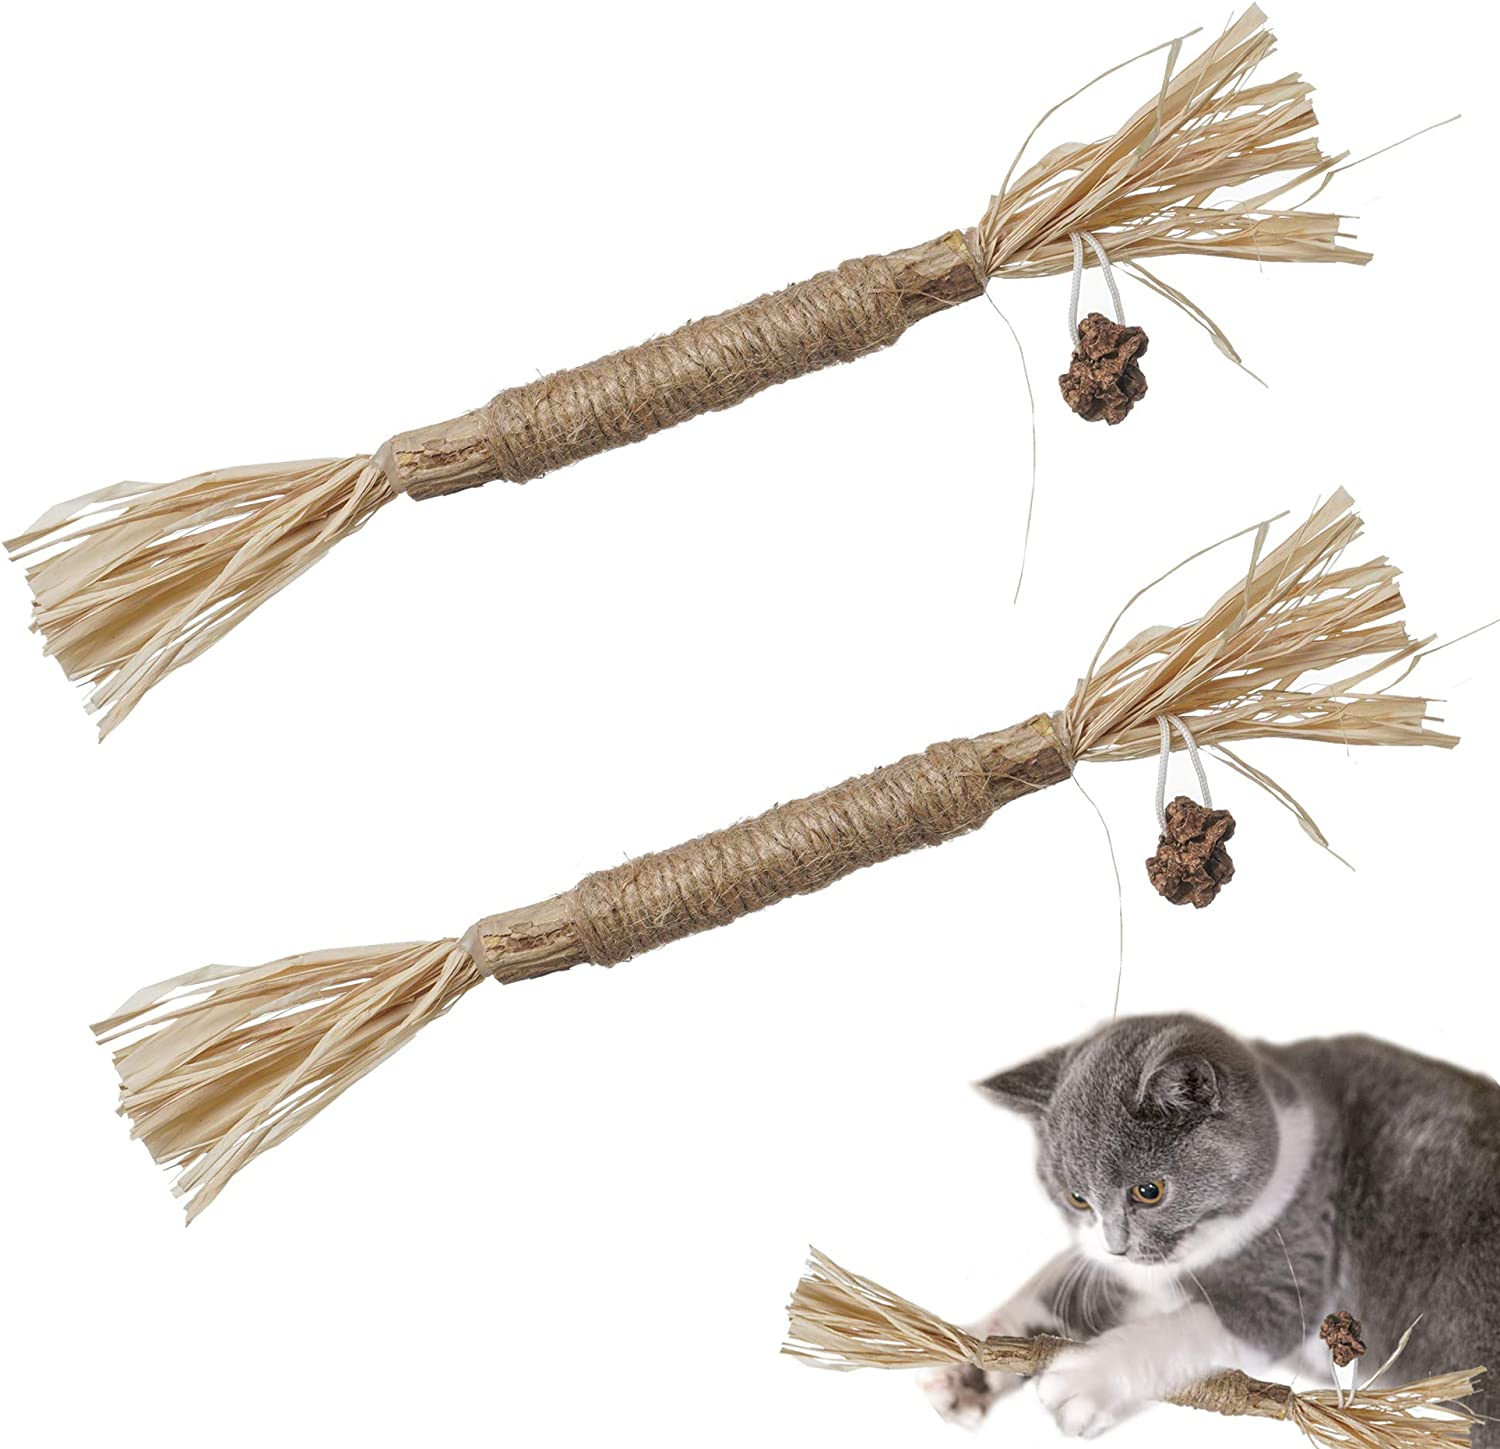 N\C Catnip Toy Cat Toy Indoor,cat Chewing Natural silvervine Sticks,Make The cat Happy cat Kick Interactive,Teeth Cleaning Edible Natural to Promote Cat's Appetite,Suitable for All Cats